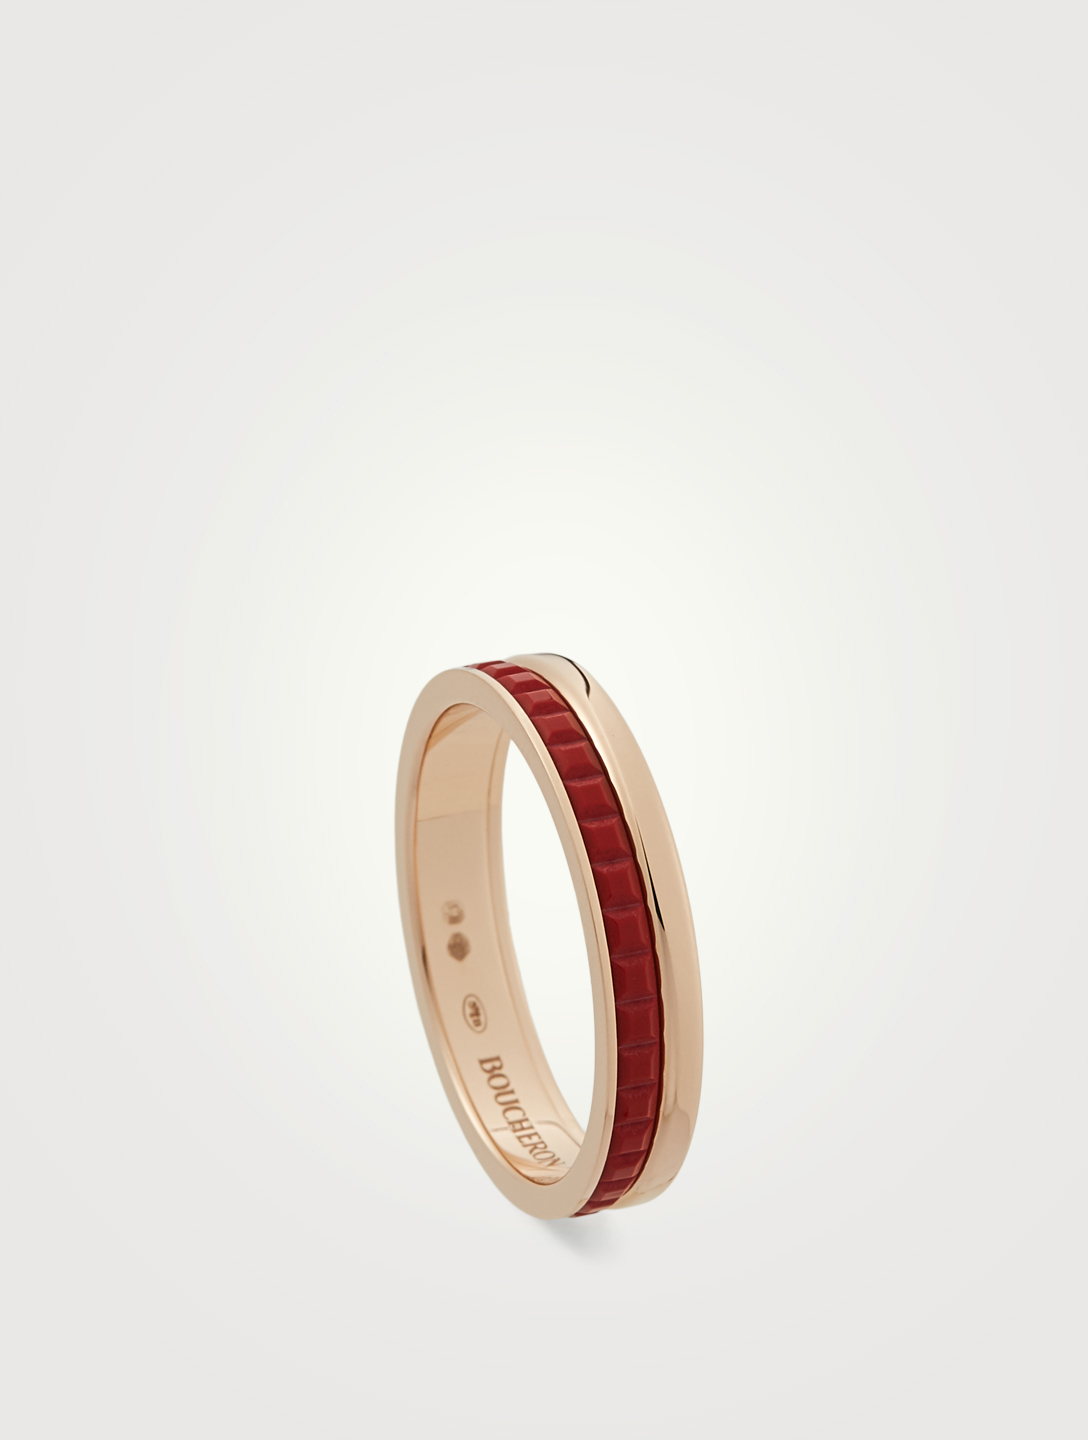 BOUCHERON Red Edition Quatre Rose Gold Wedding Band With Ceramic Women's Pink